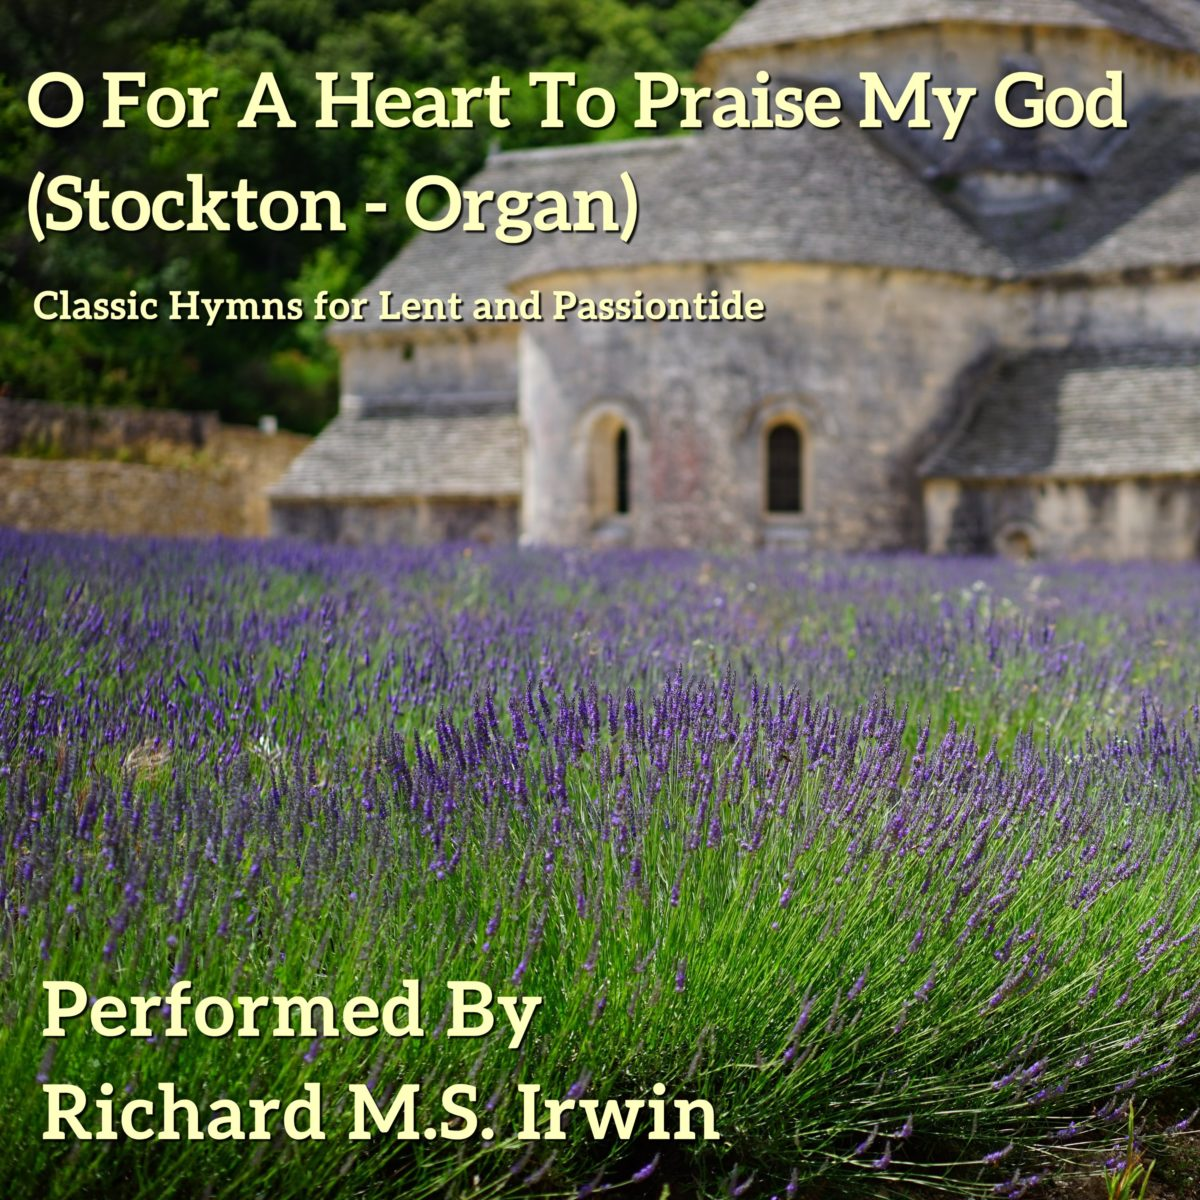 O For A Heart To Praise My God (Stockton- 5 Verses) – Organ